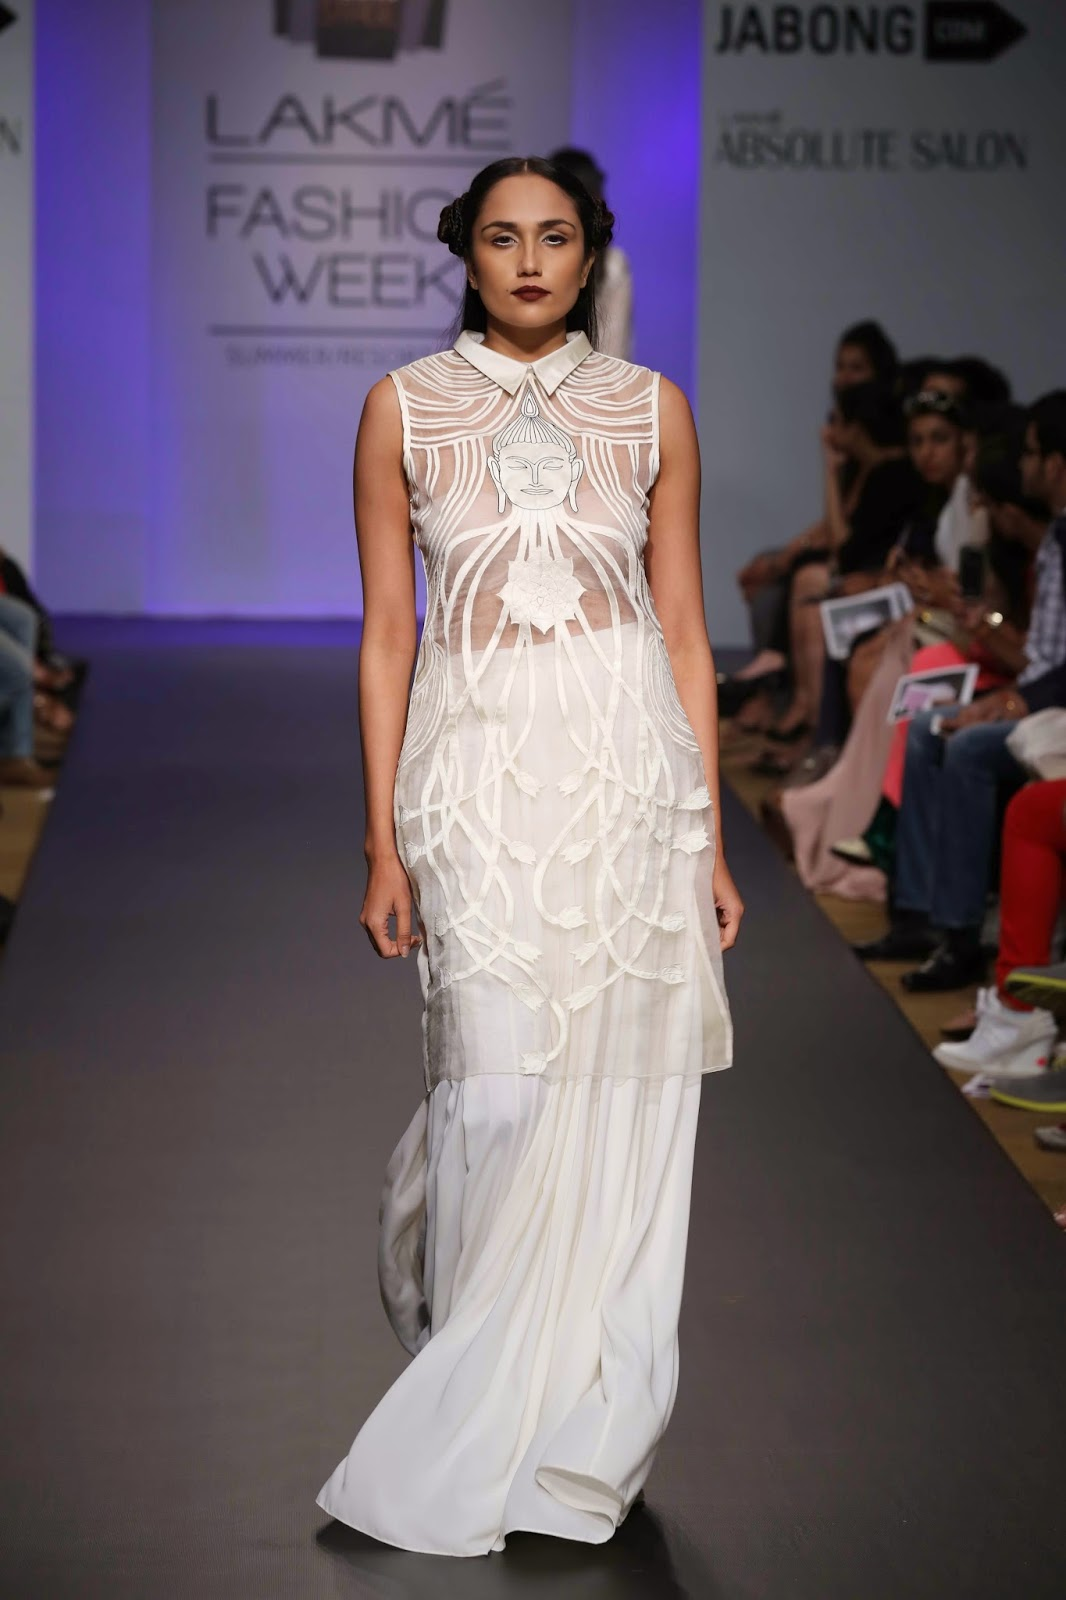 Designer duo Aiman Agha and Armaan Randhawa under their label 'ARMAAN AIMAN' showcased a surreal, fantasy-meets-fashion collection titled 'Buddalicious' at Jabong Stage during Lakmé Fashion Week Summer/Resort 2014.